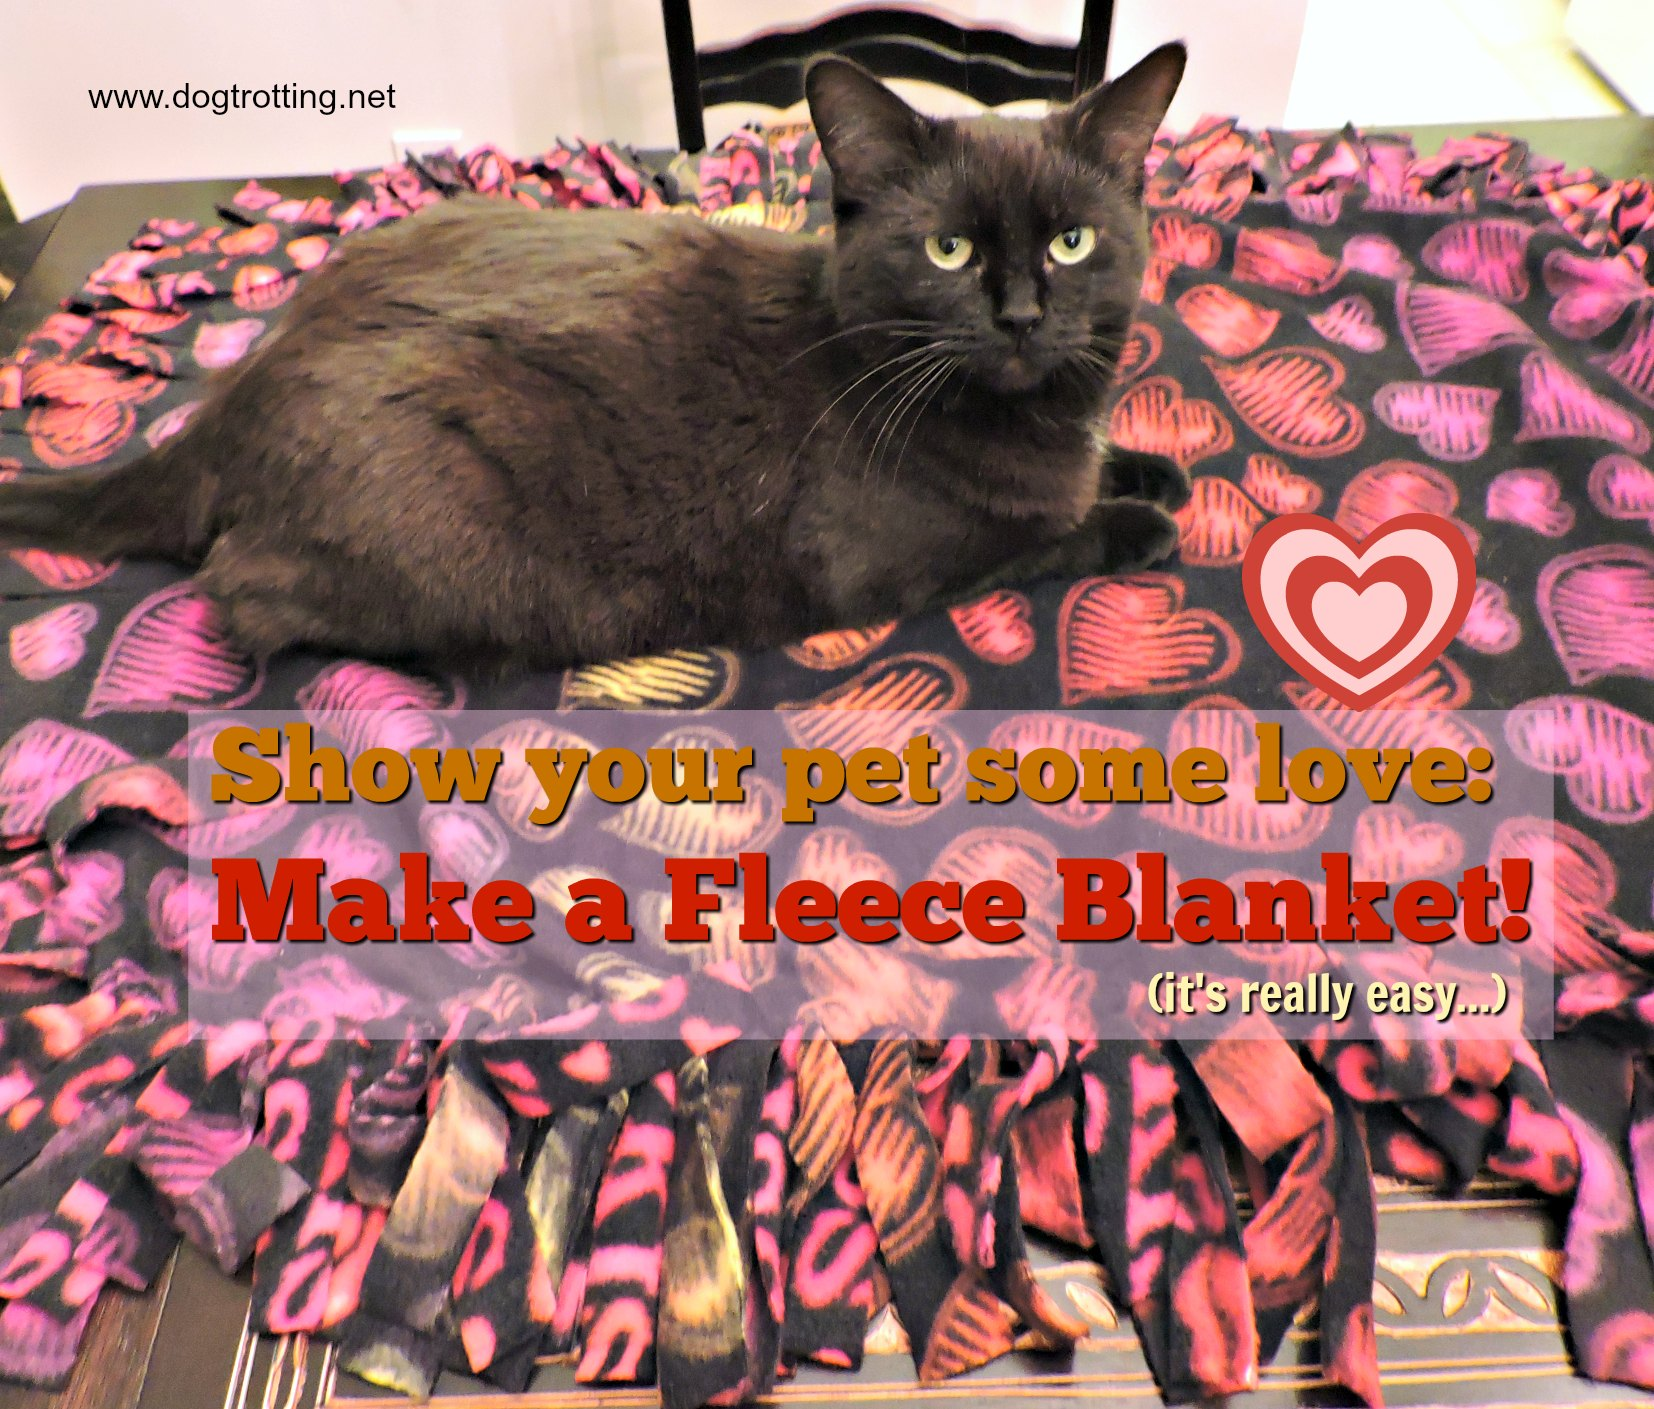 DIY Fleece dog blanket project